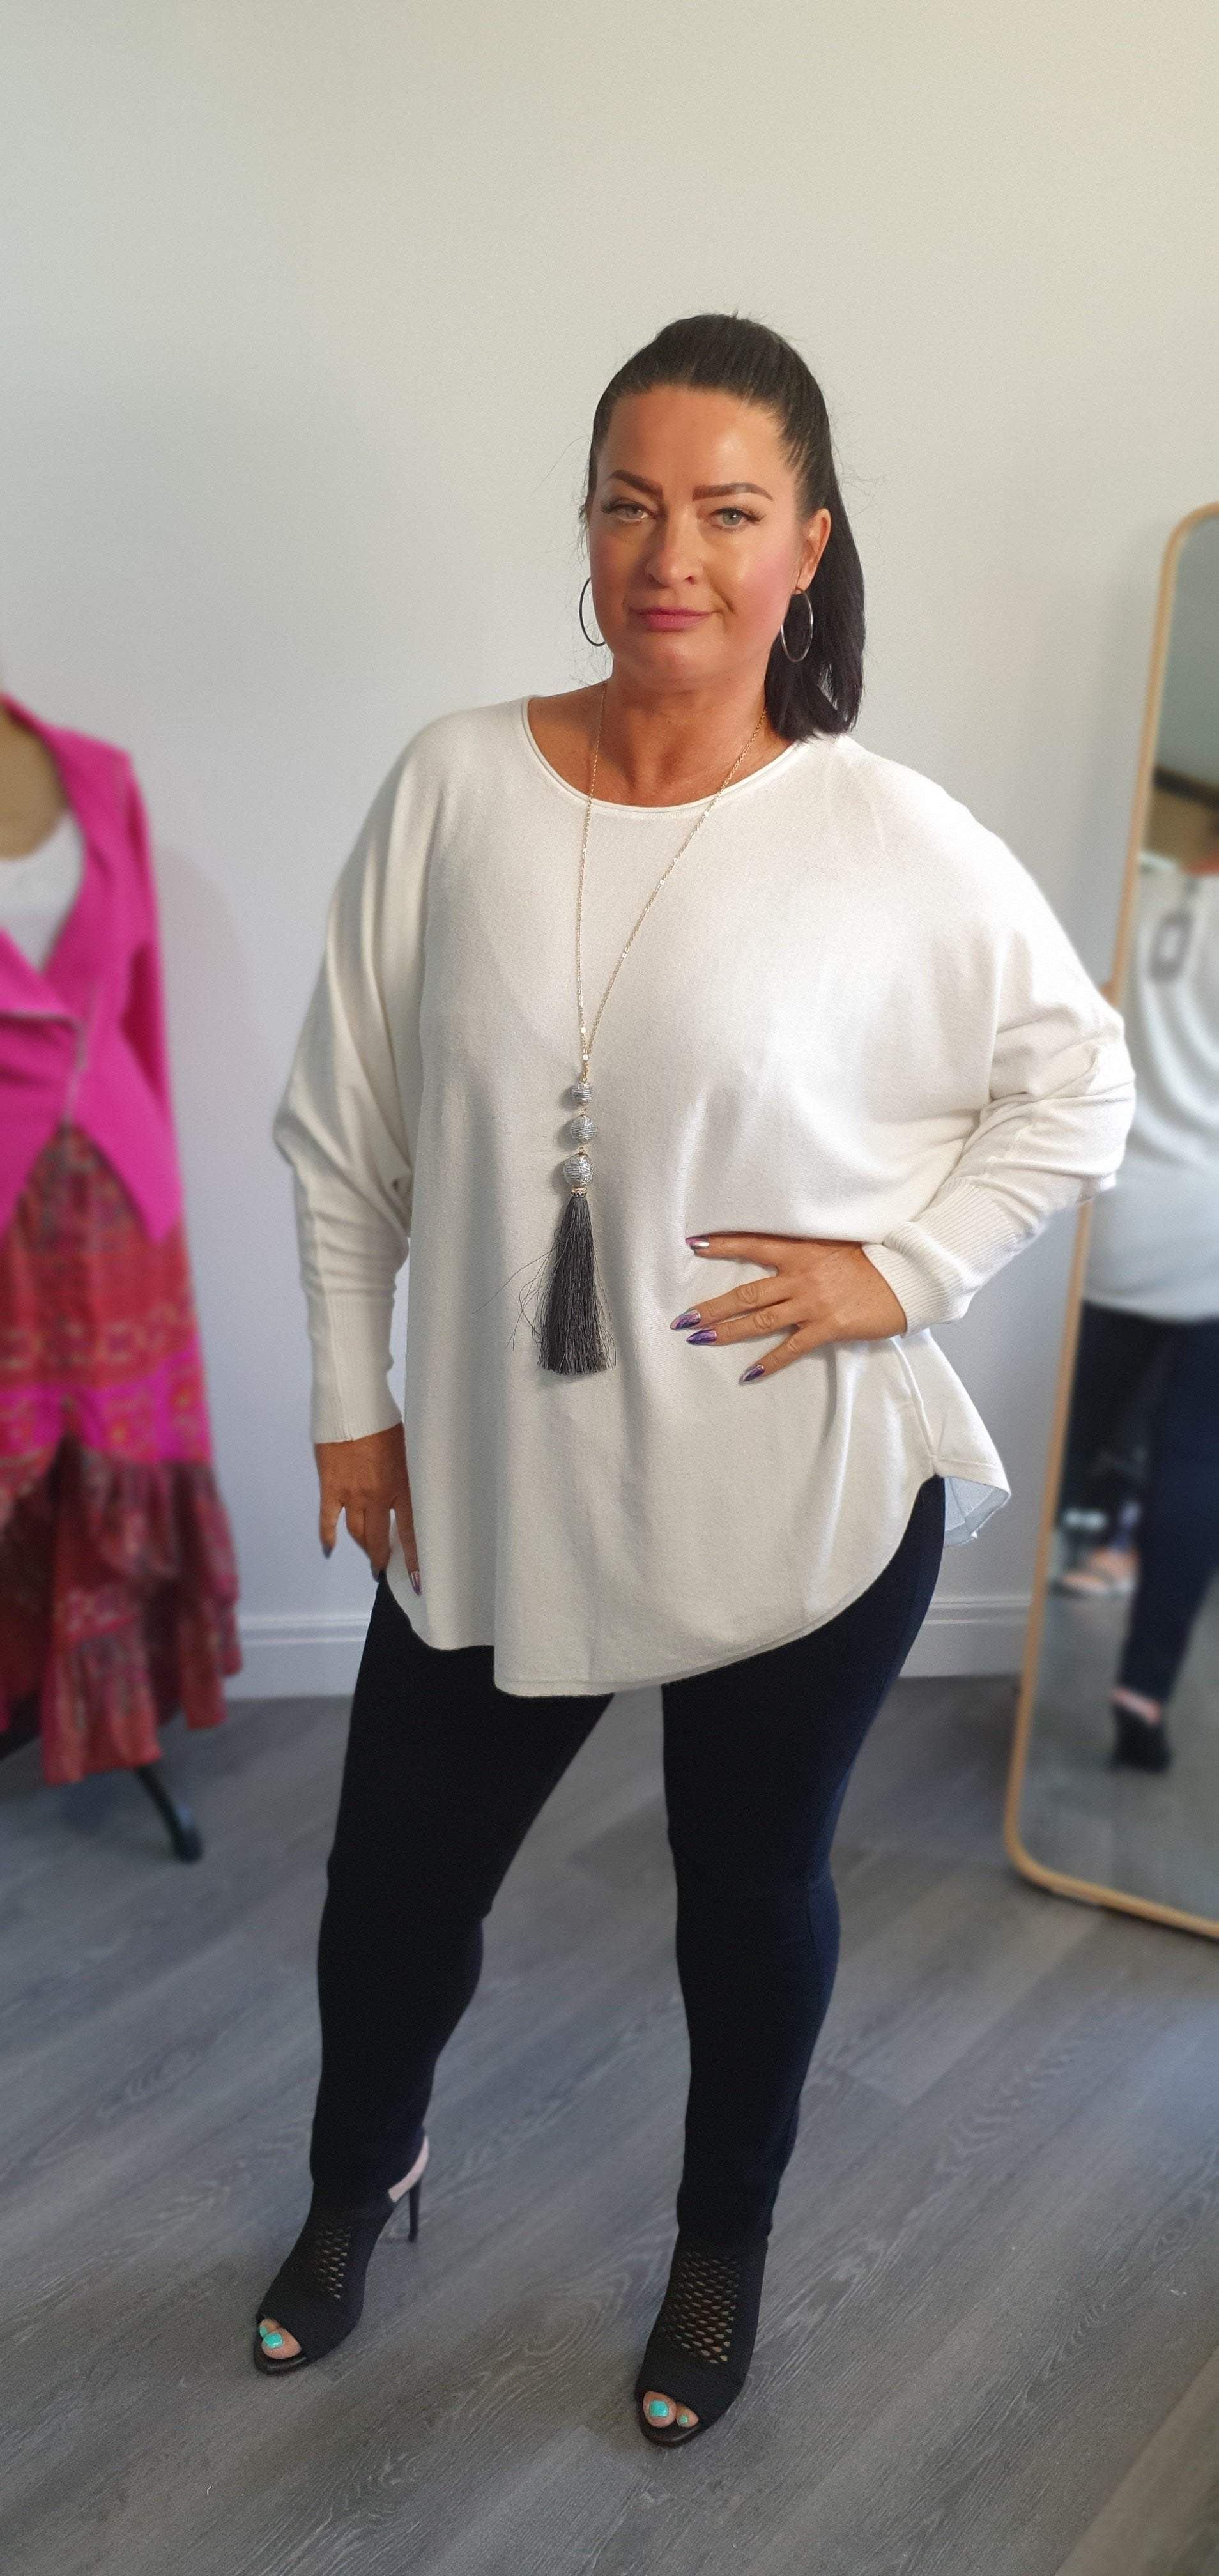 The white company jumper